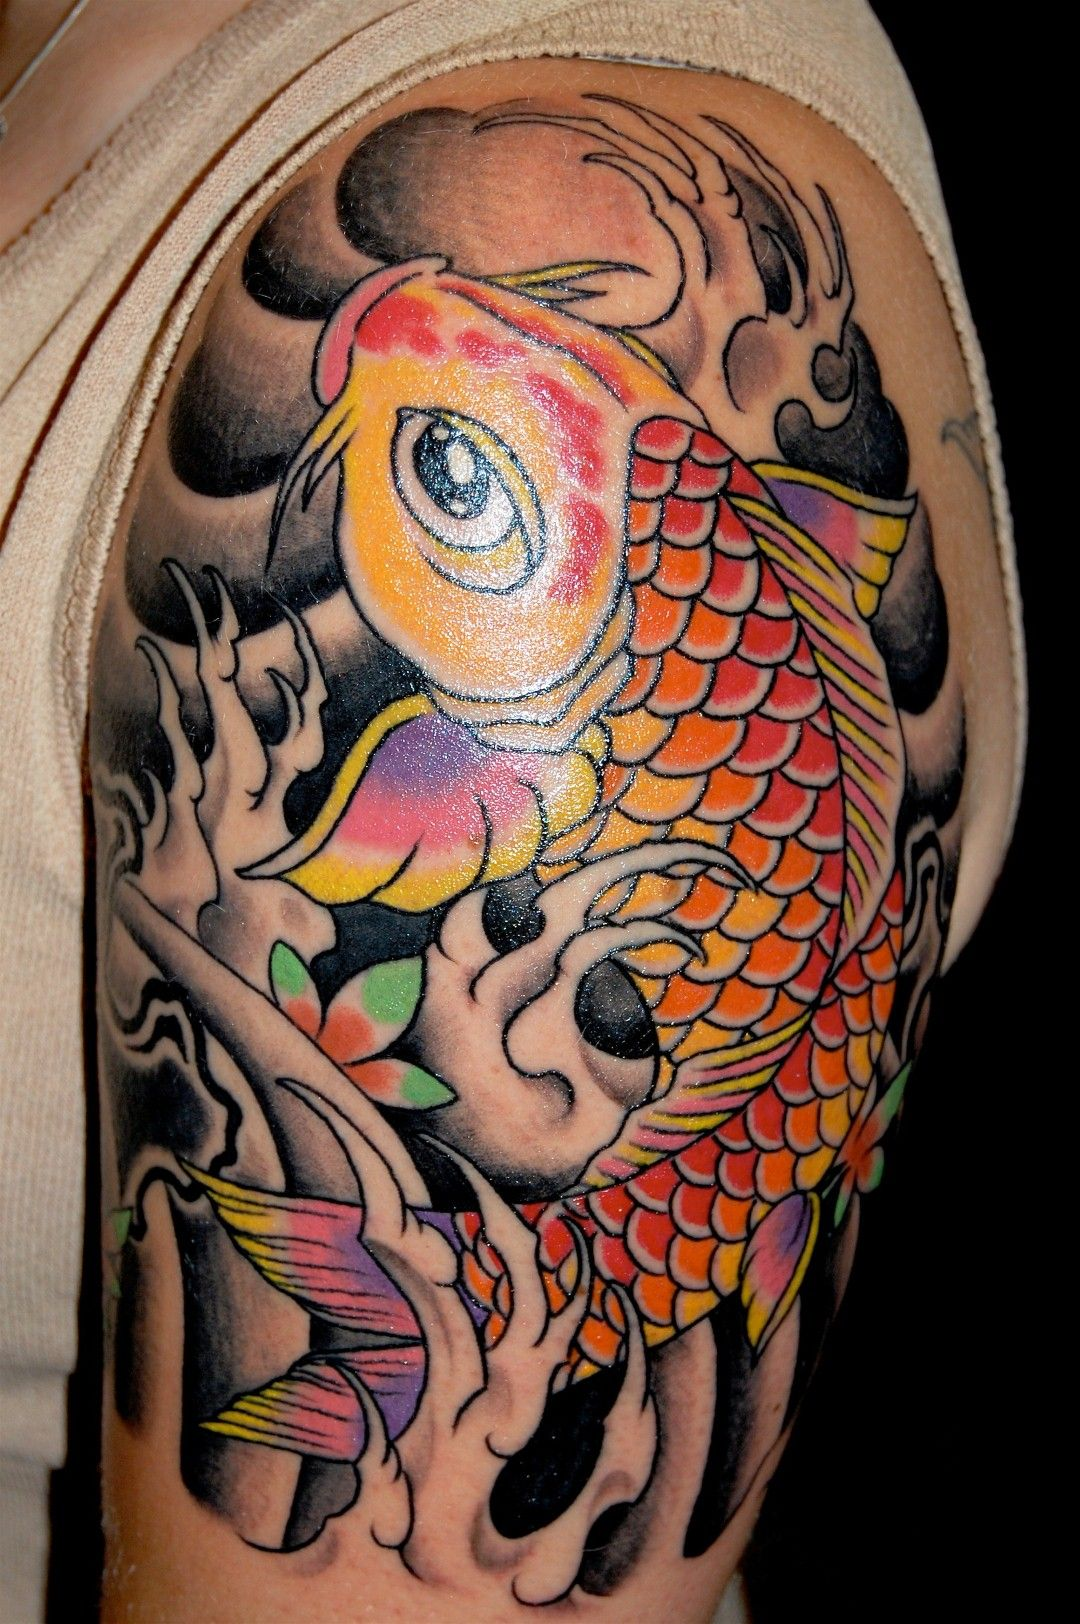 Best Koi Fish Tattoo Ideas Carpa, Tatoo